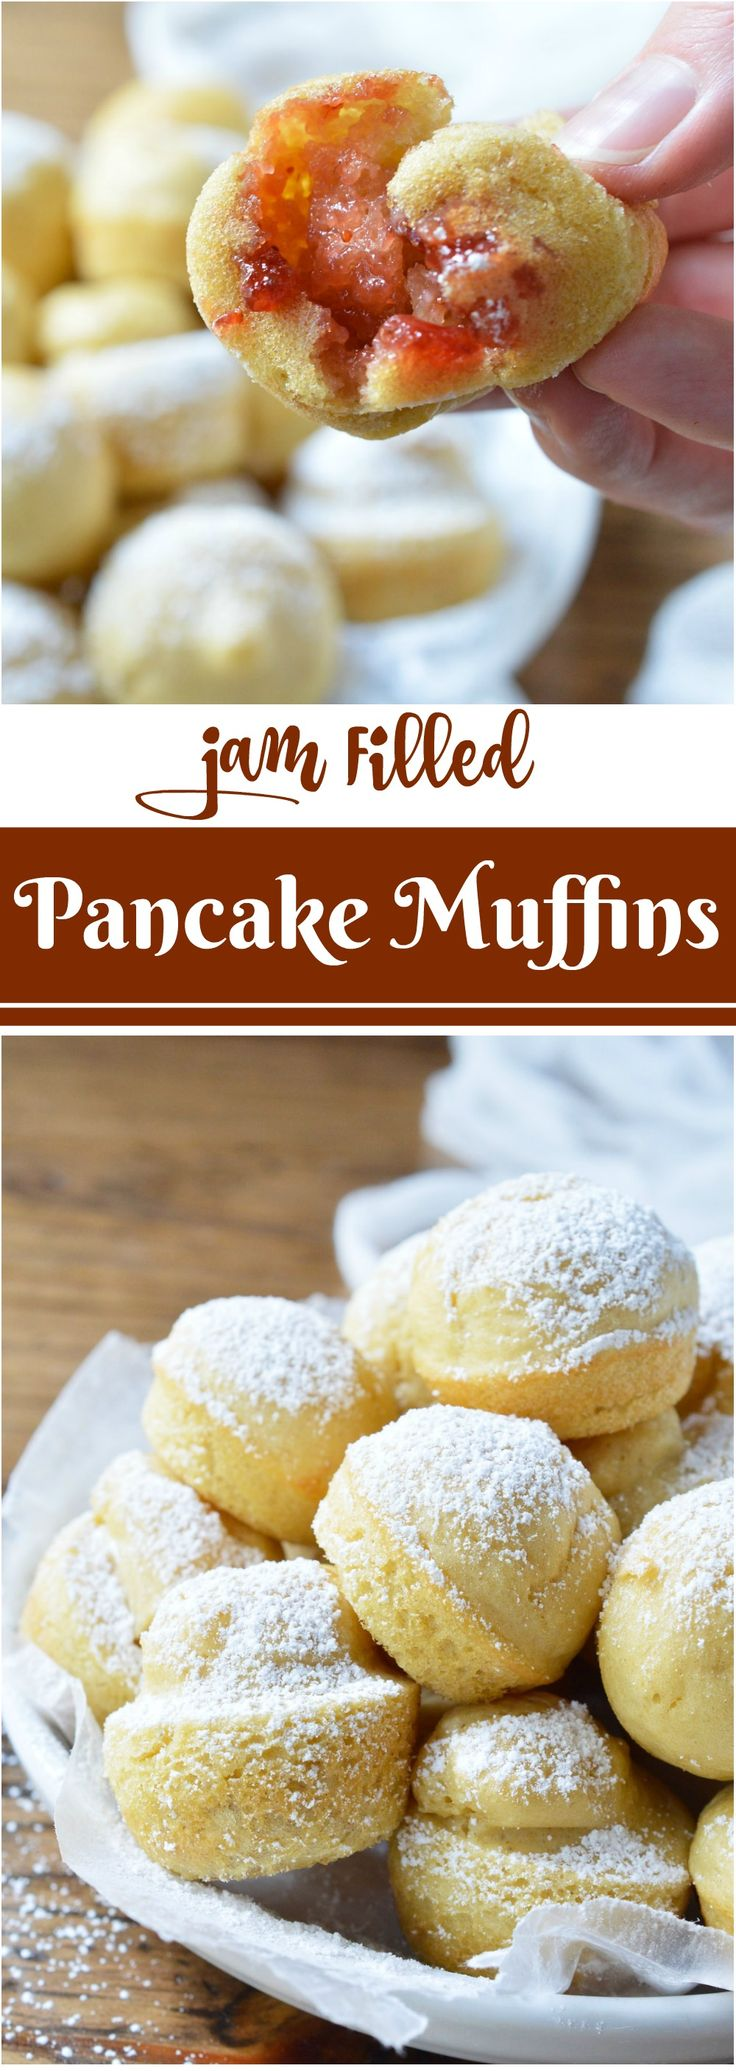 Want pancakes for breakfast without all the flipping? This Baked Dairy Free Pancake Muffins Recipe is super easy to make and great for feeding a hungry crowd! Not only are these pancake bites light and fluffy, they are also filled with strawberry jam! #ad #SilkProteinNutmilk @lovemysilk